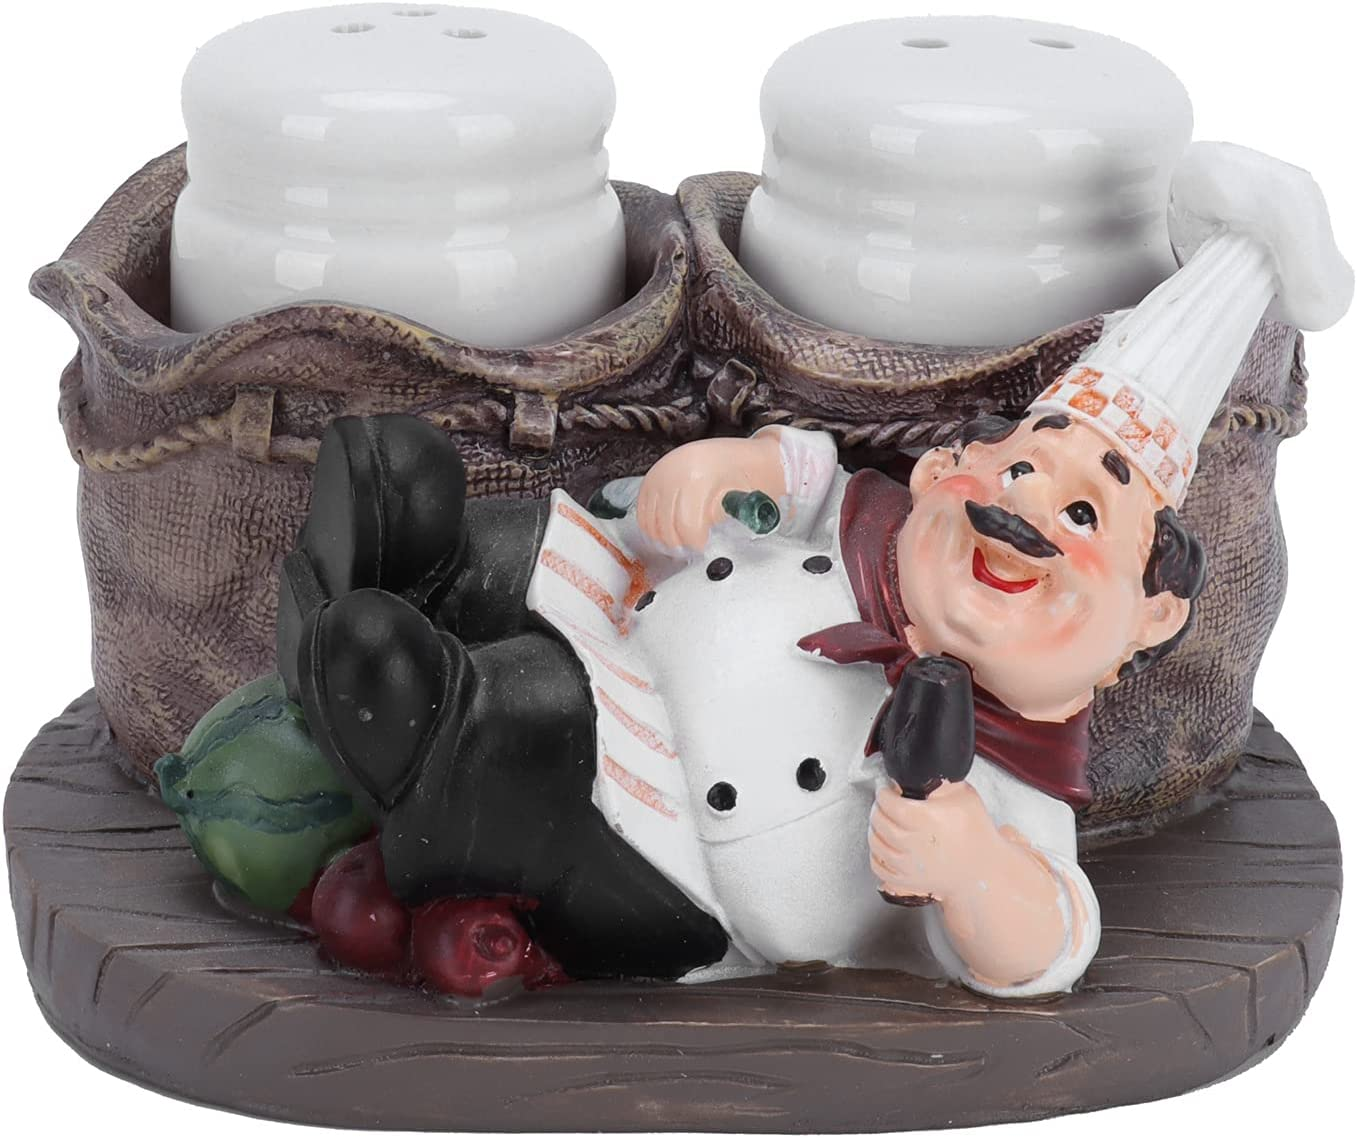 Chef Decorative Toothpick Holder Chicago Mall At the price French F Innovative Resin